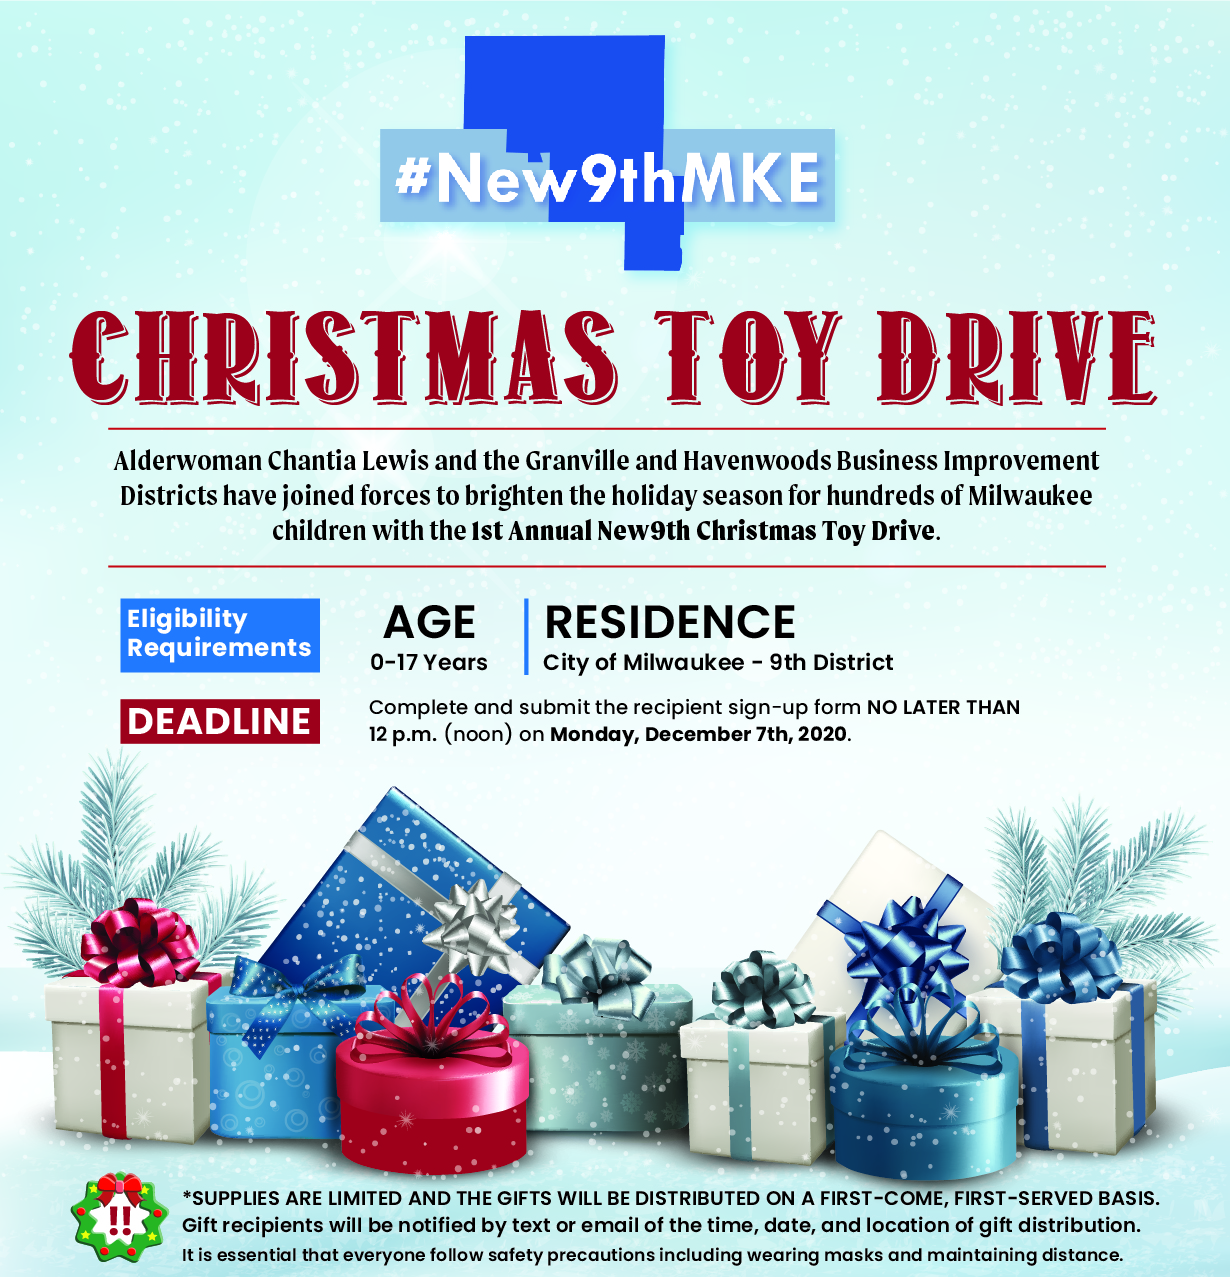 1st Annual New9th Christmas Toy Drive to Brighten the Season for Hundreds of Children